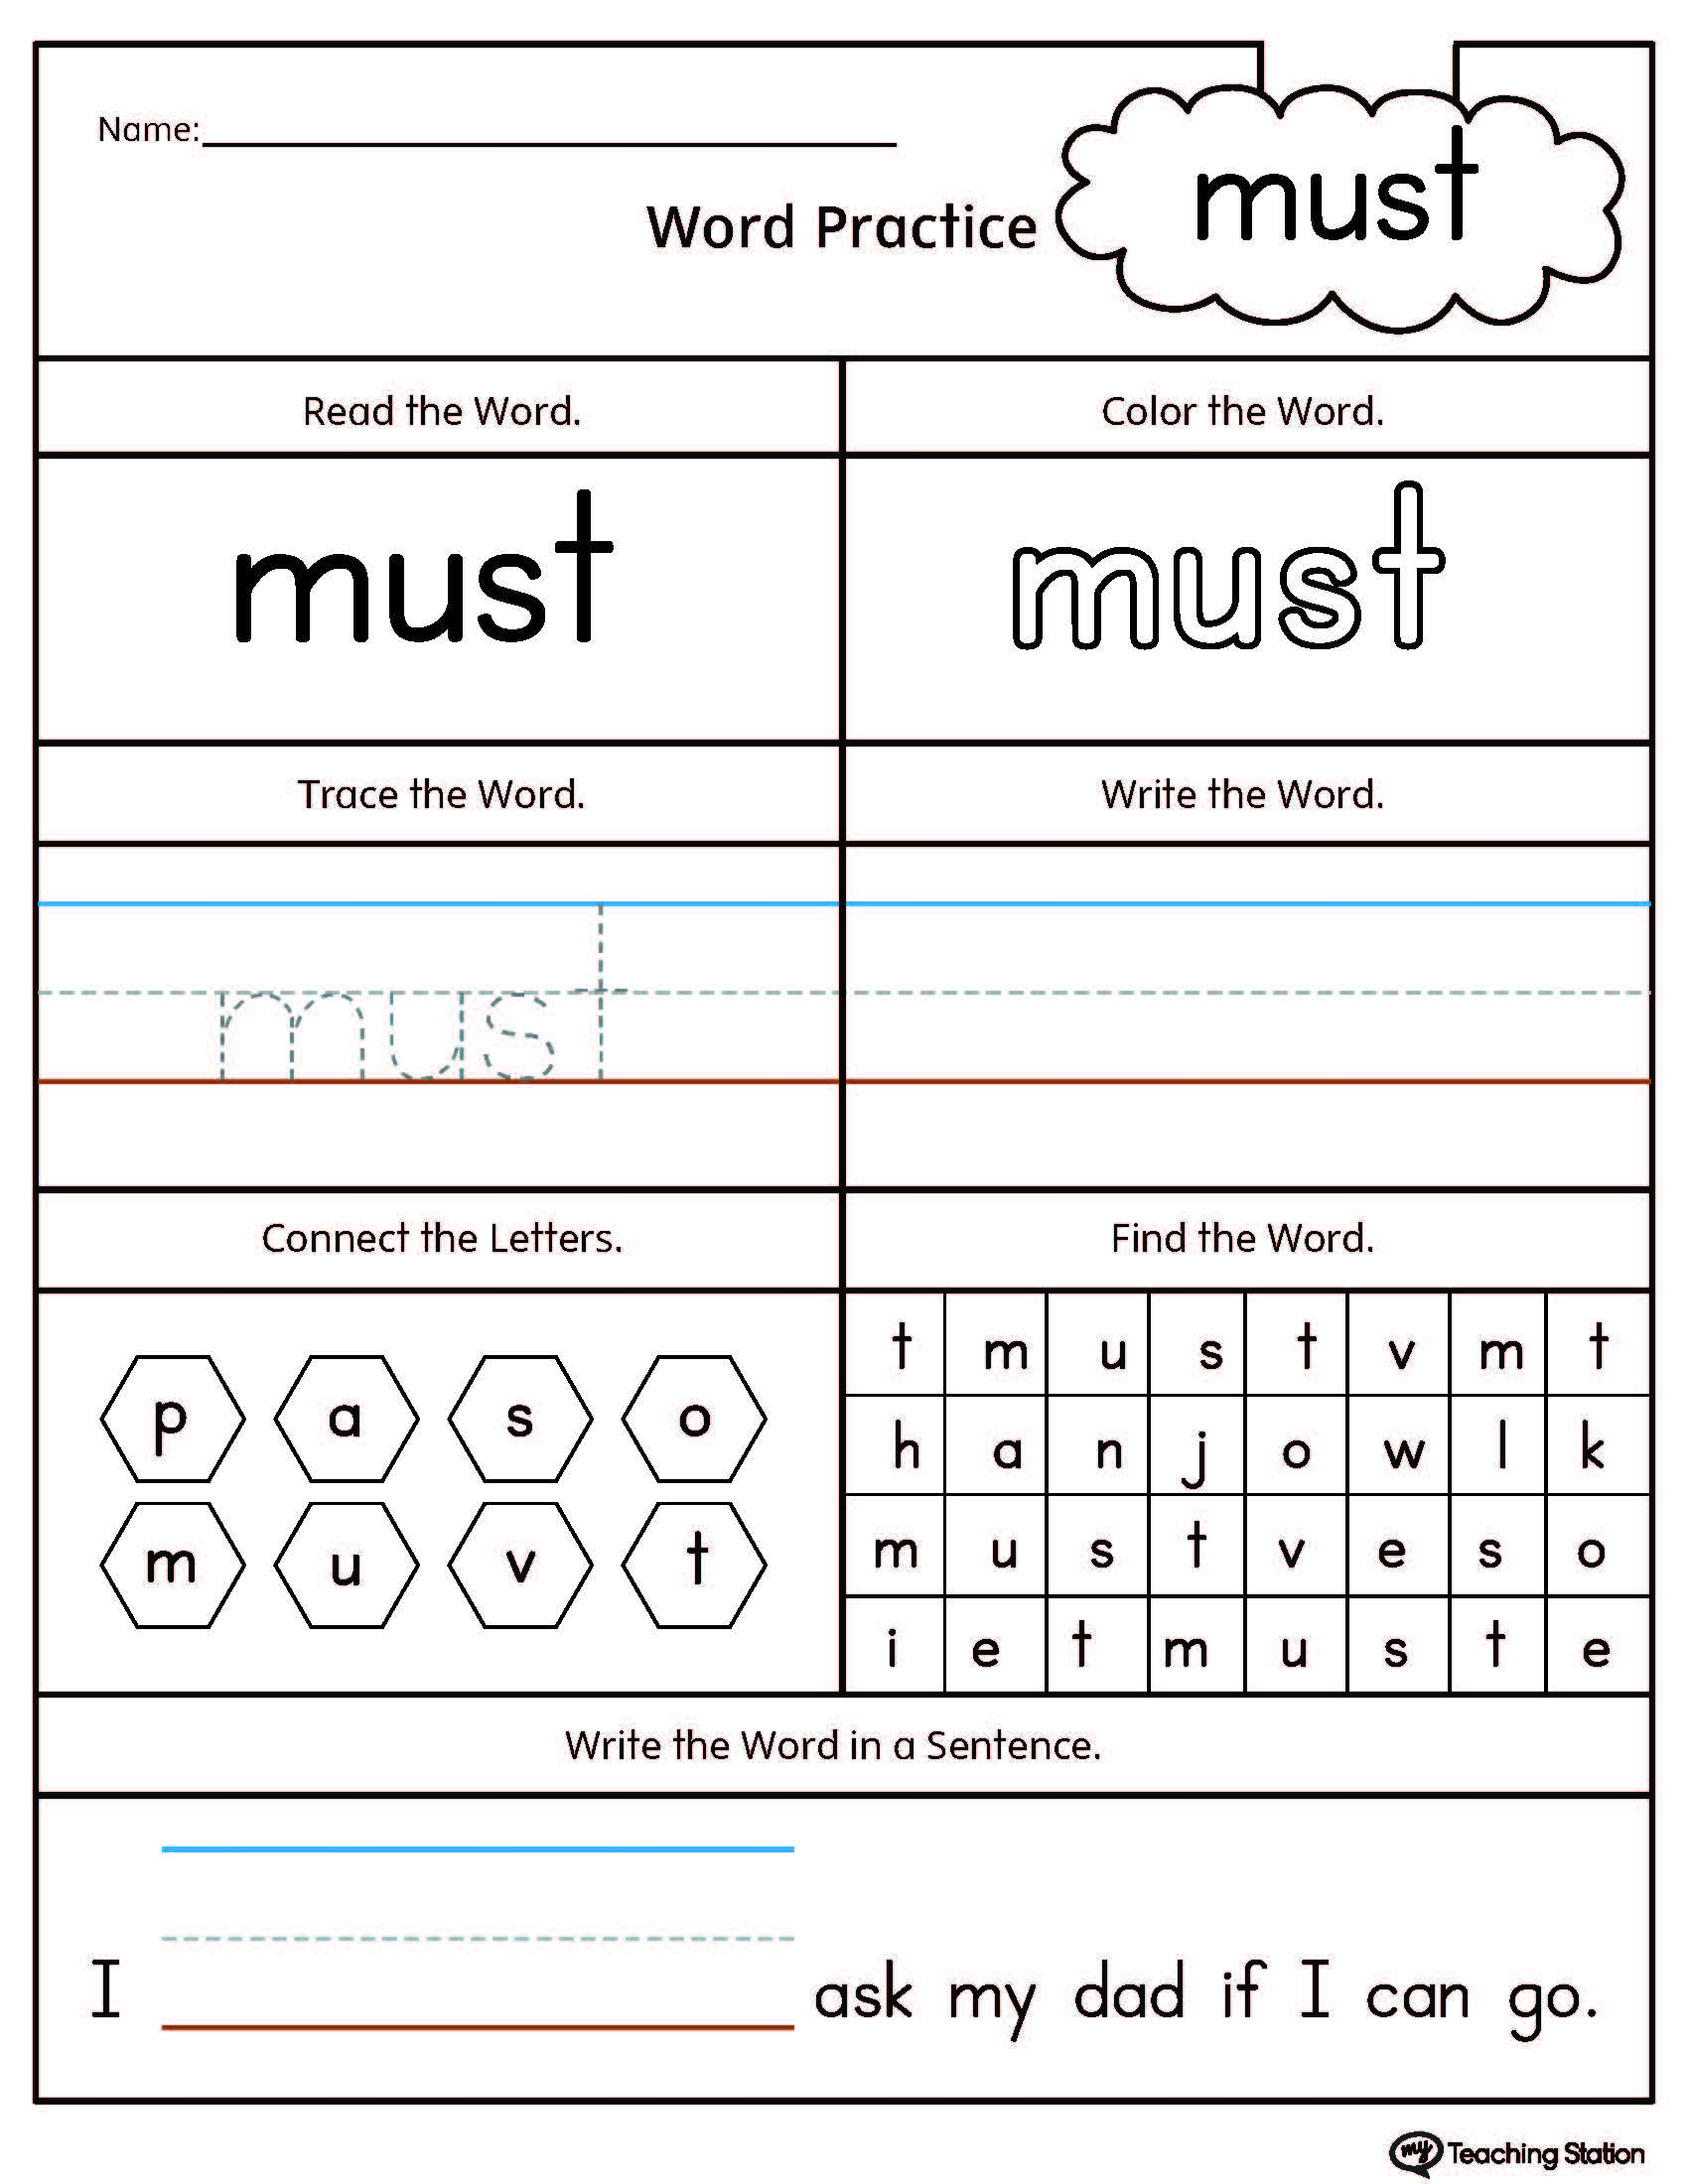 Worksheets Free Printable Sight Word Worksheets kindergarten high frequency words printable worksheets word must worksheet